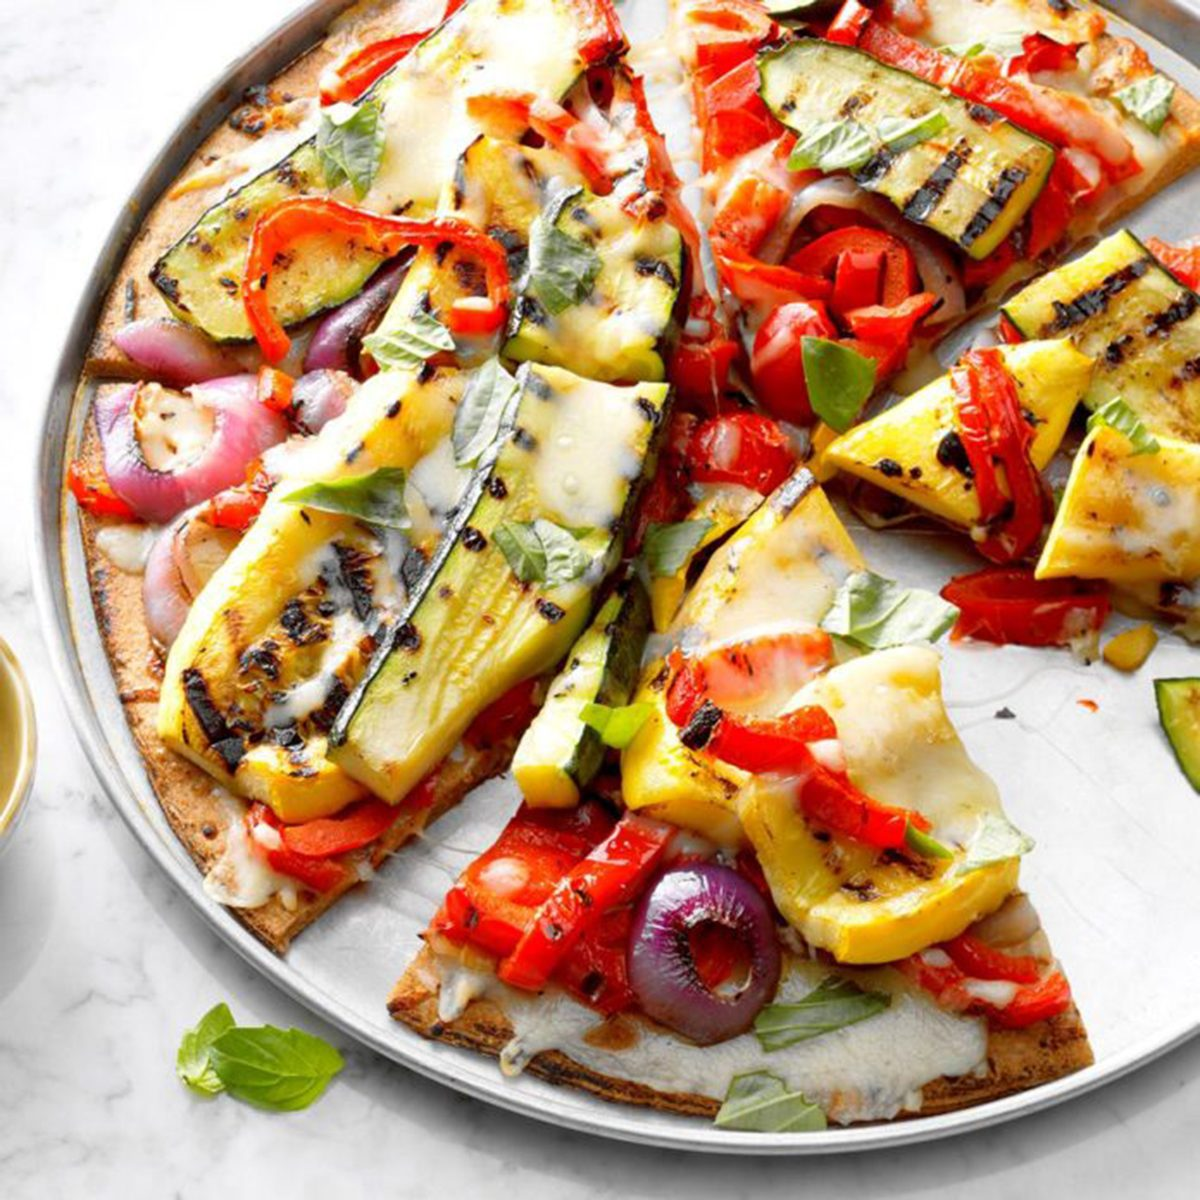 60 Vegetarian Recipes that Will Impress the Whole Gang